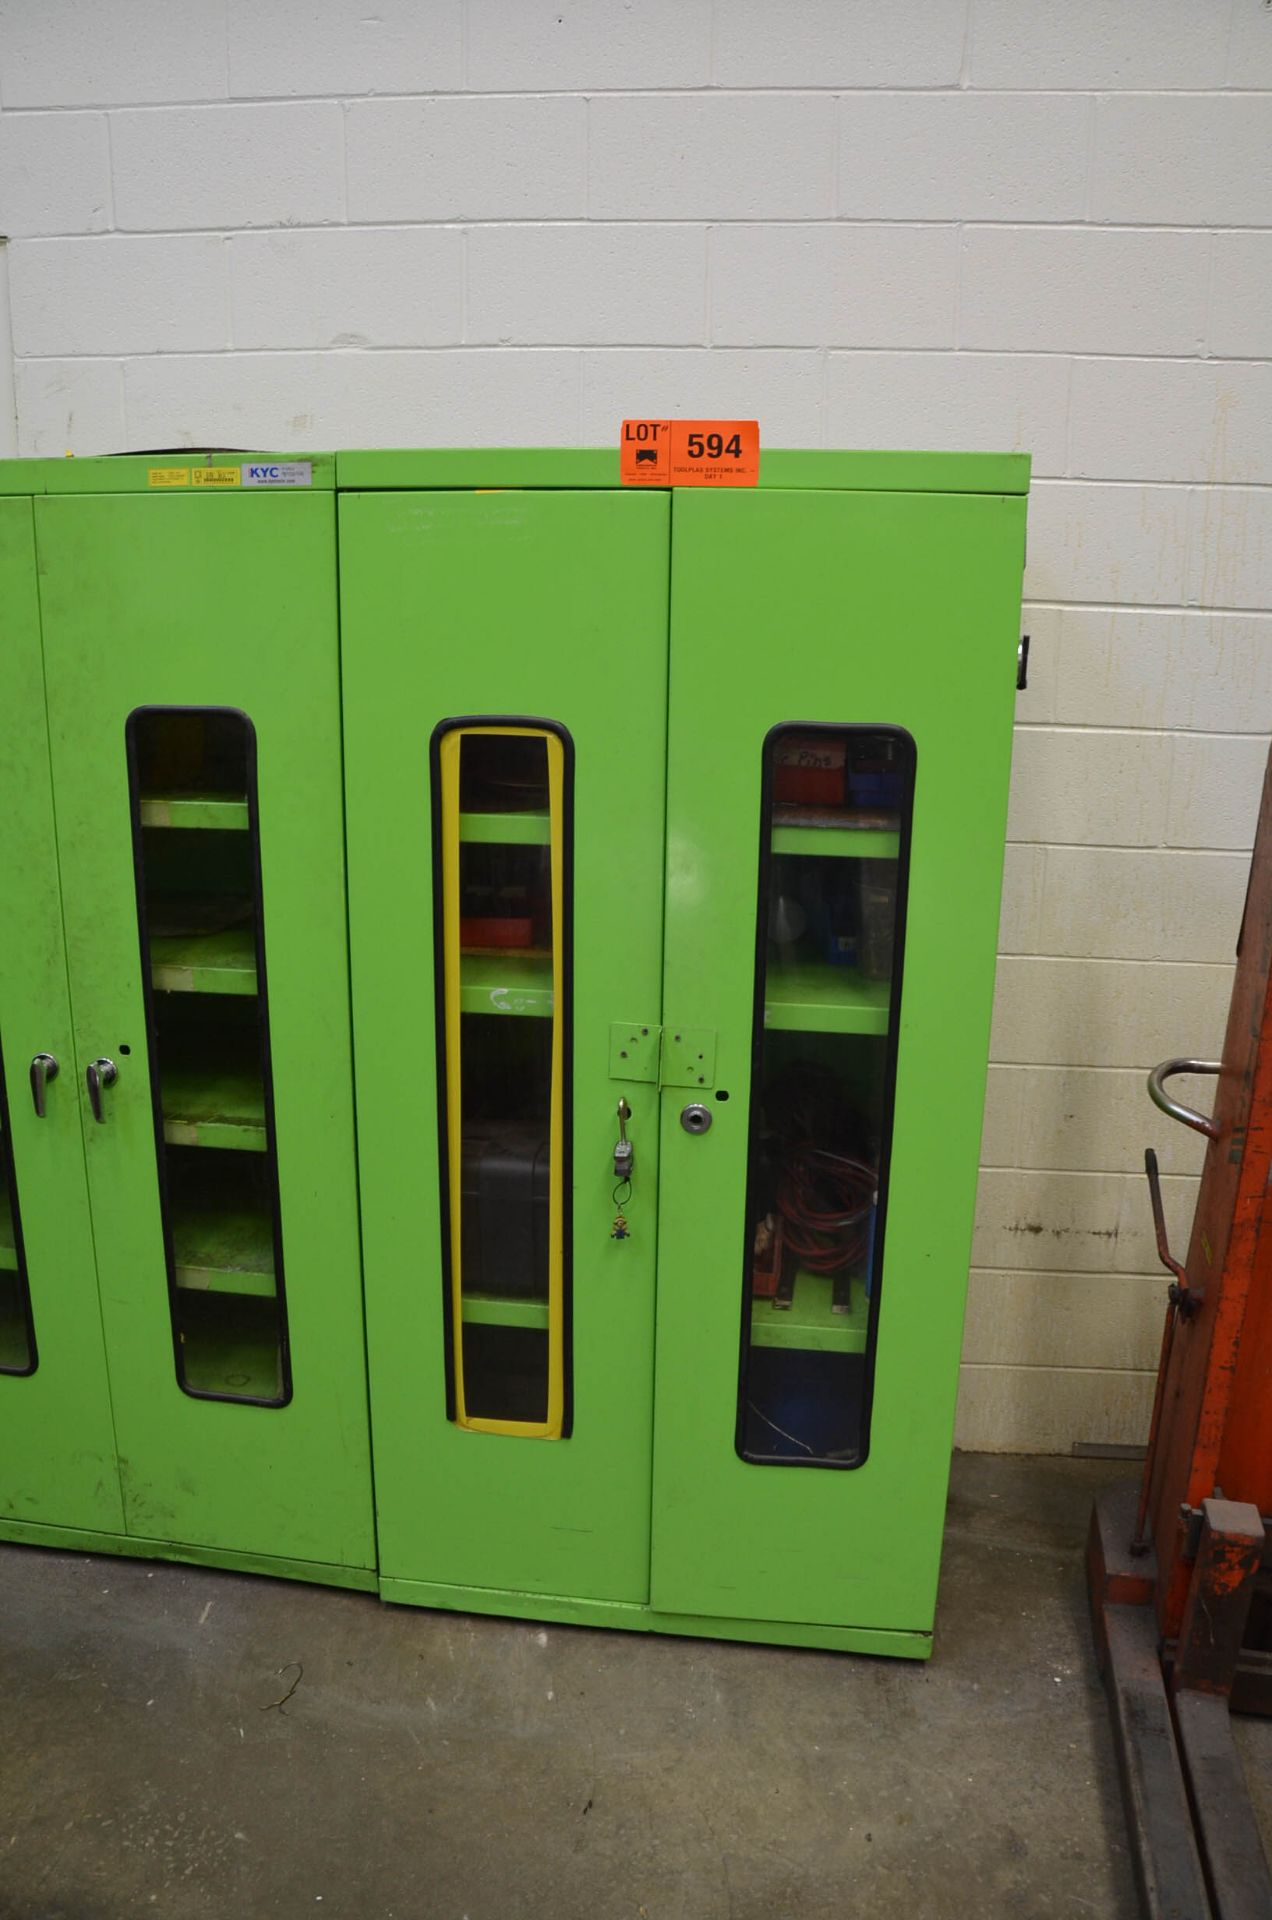 LOT/ CABINET WITH CONTENTS - PARTS AND CONSUMABLES - Image 2 of 2